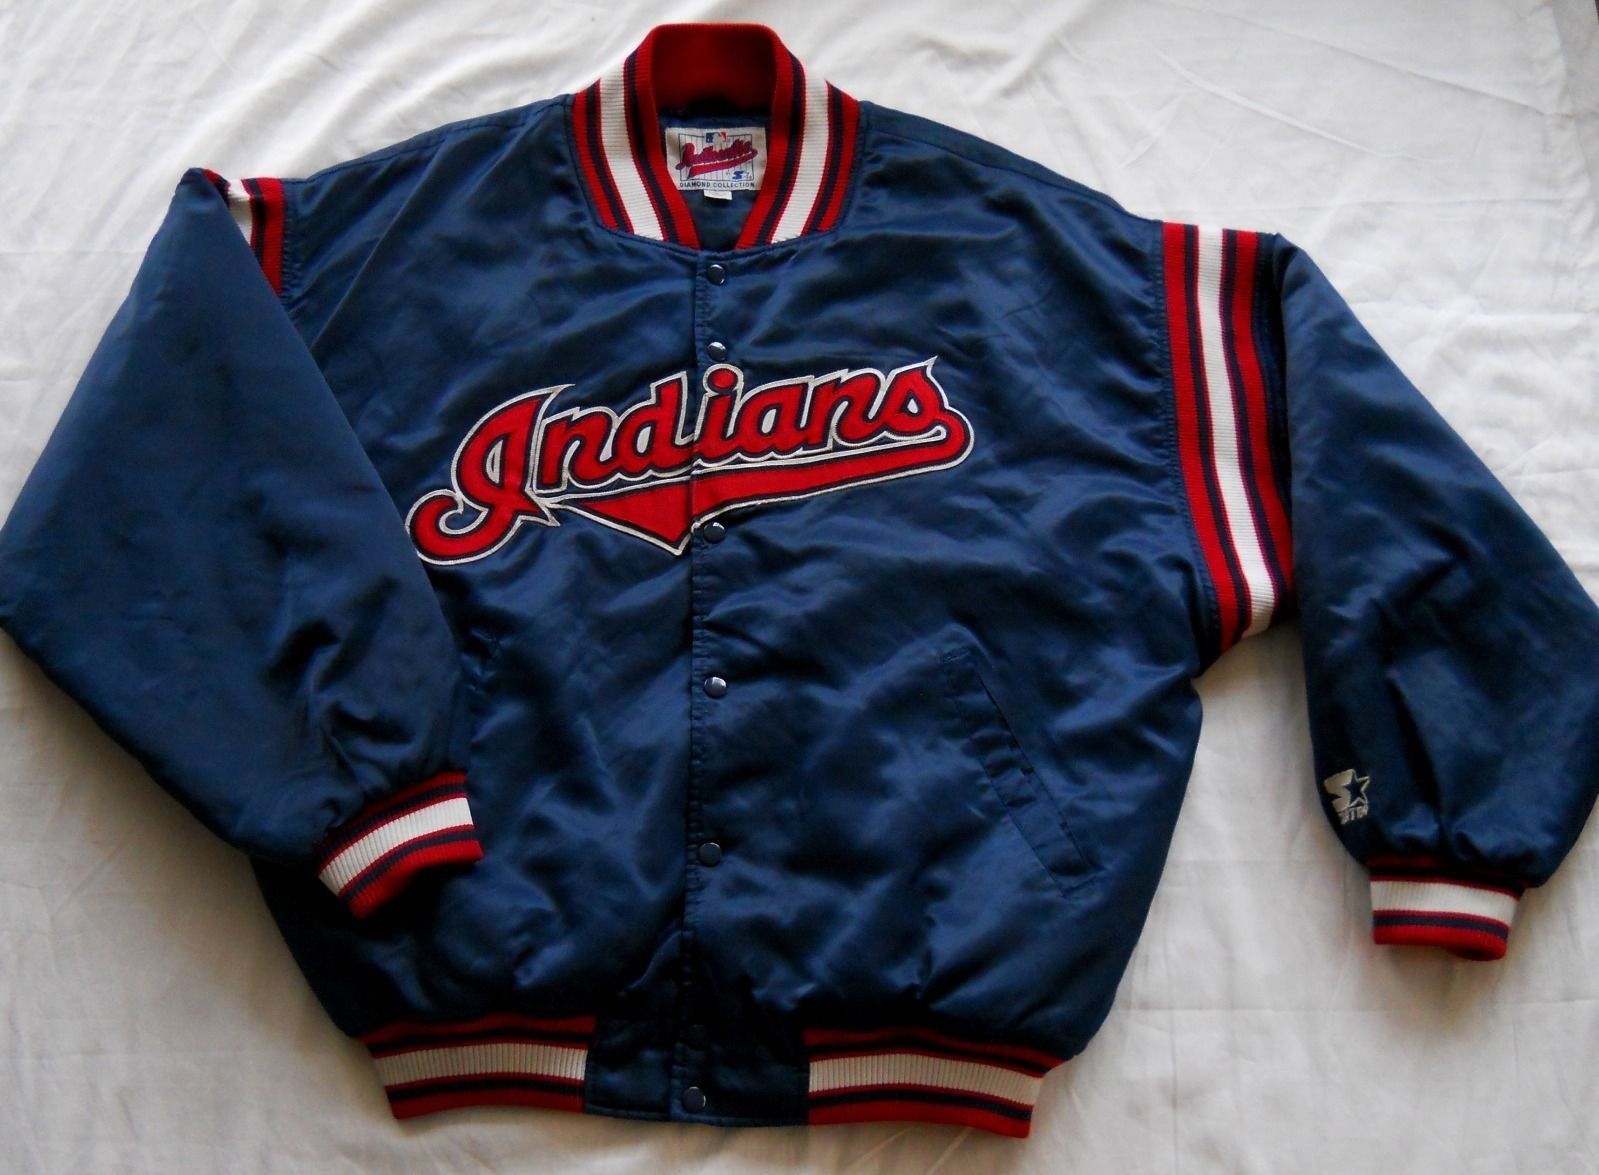 cae0ed3cdf5be Cleveland Indians Starter Jacket Vintage MLB Diamond Collection Dugout  Large